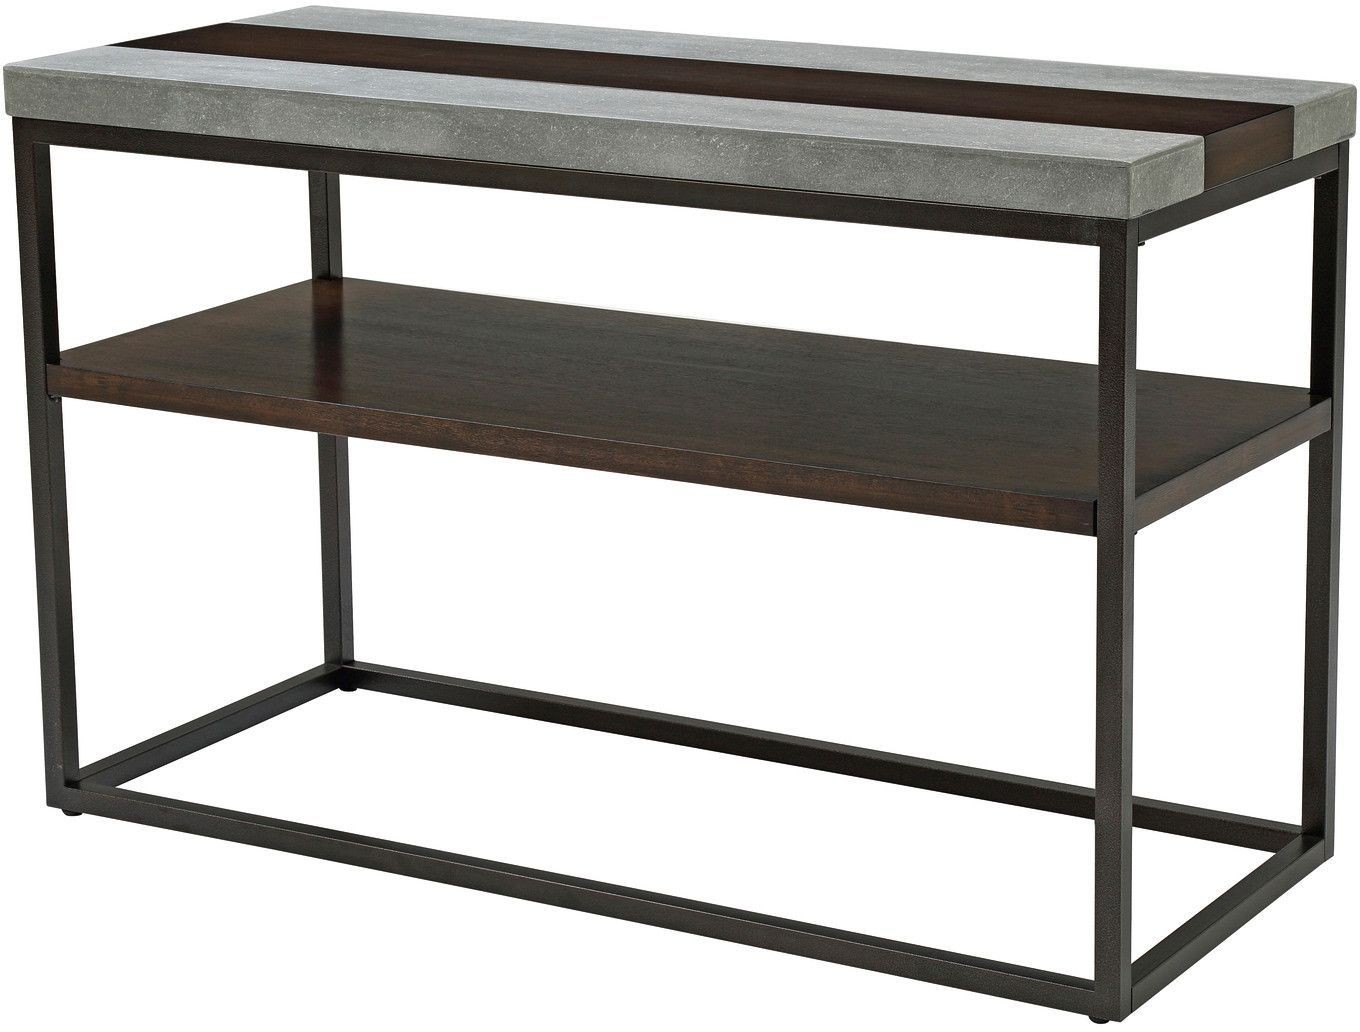 Stoneworks merlot natural stone sofa table from emerald for Environmental stoneworks pricing